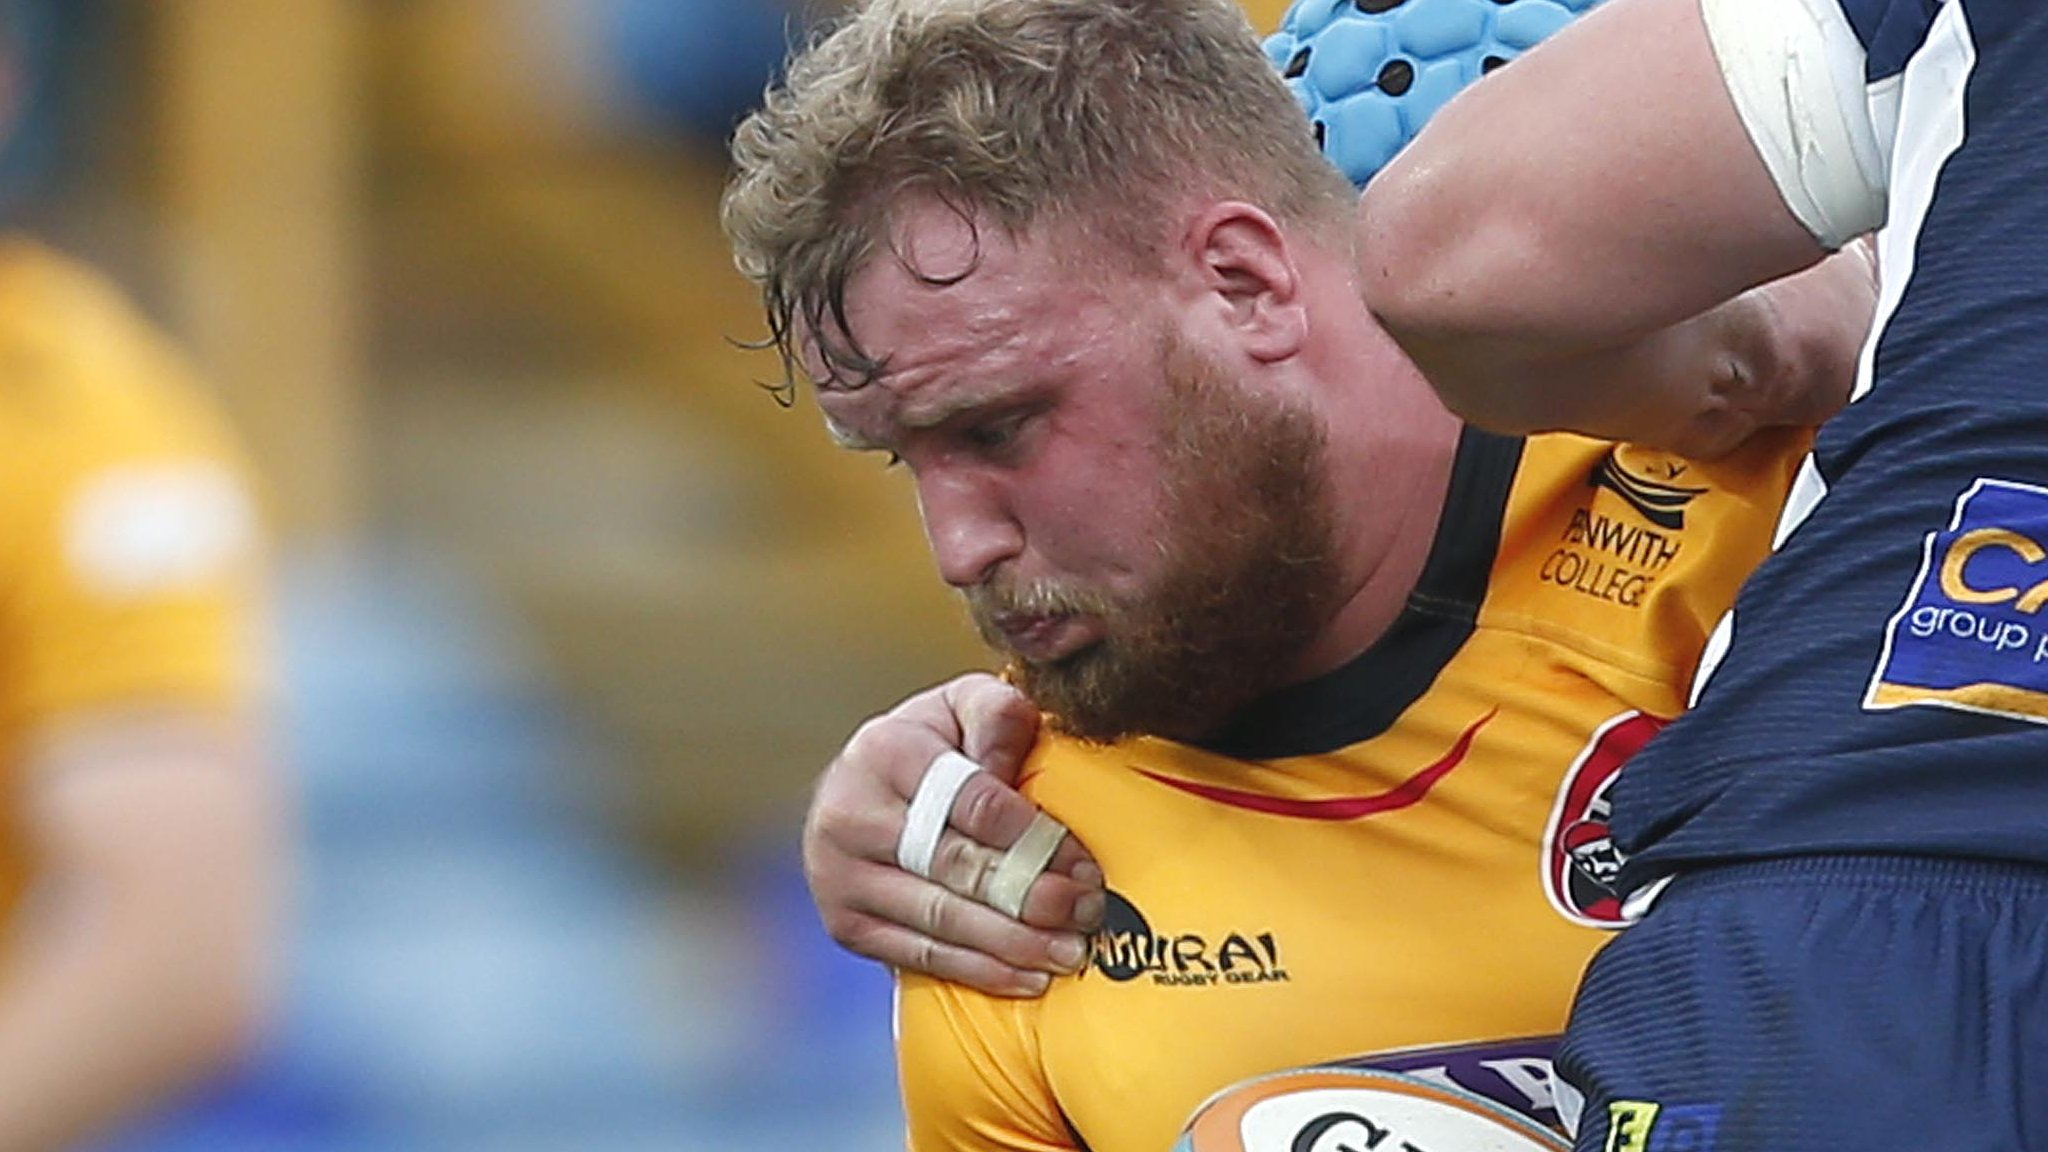 Christian Judge: Saracens sign Cornish Pirates prop on loan as injury cover